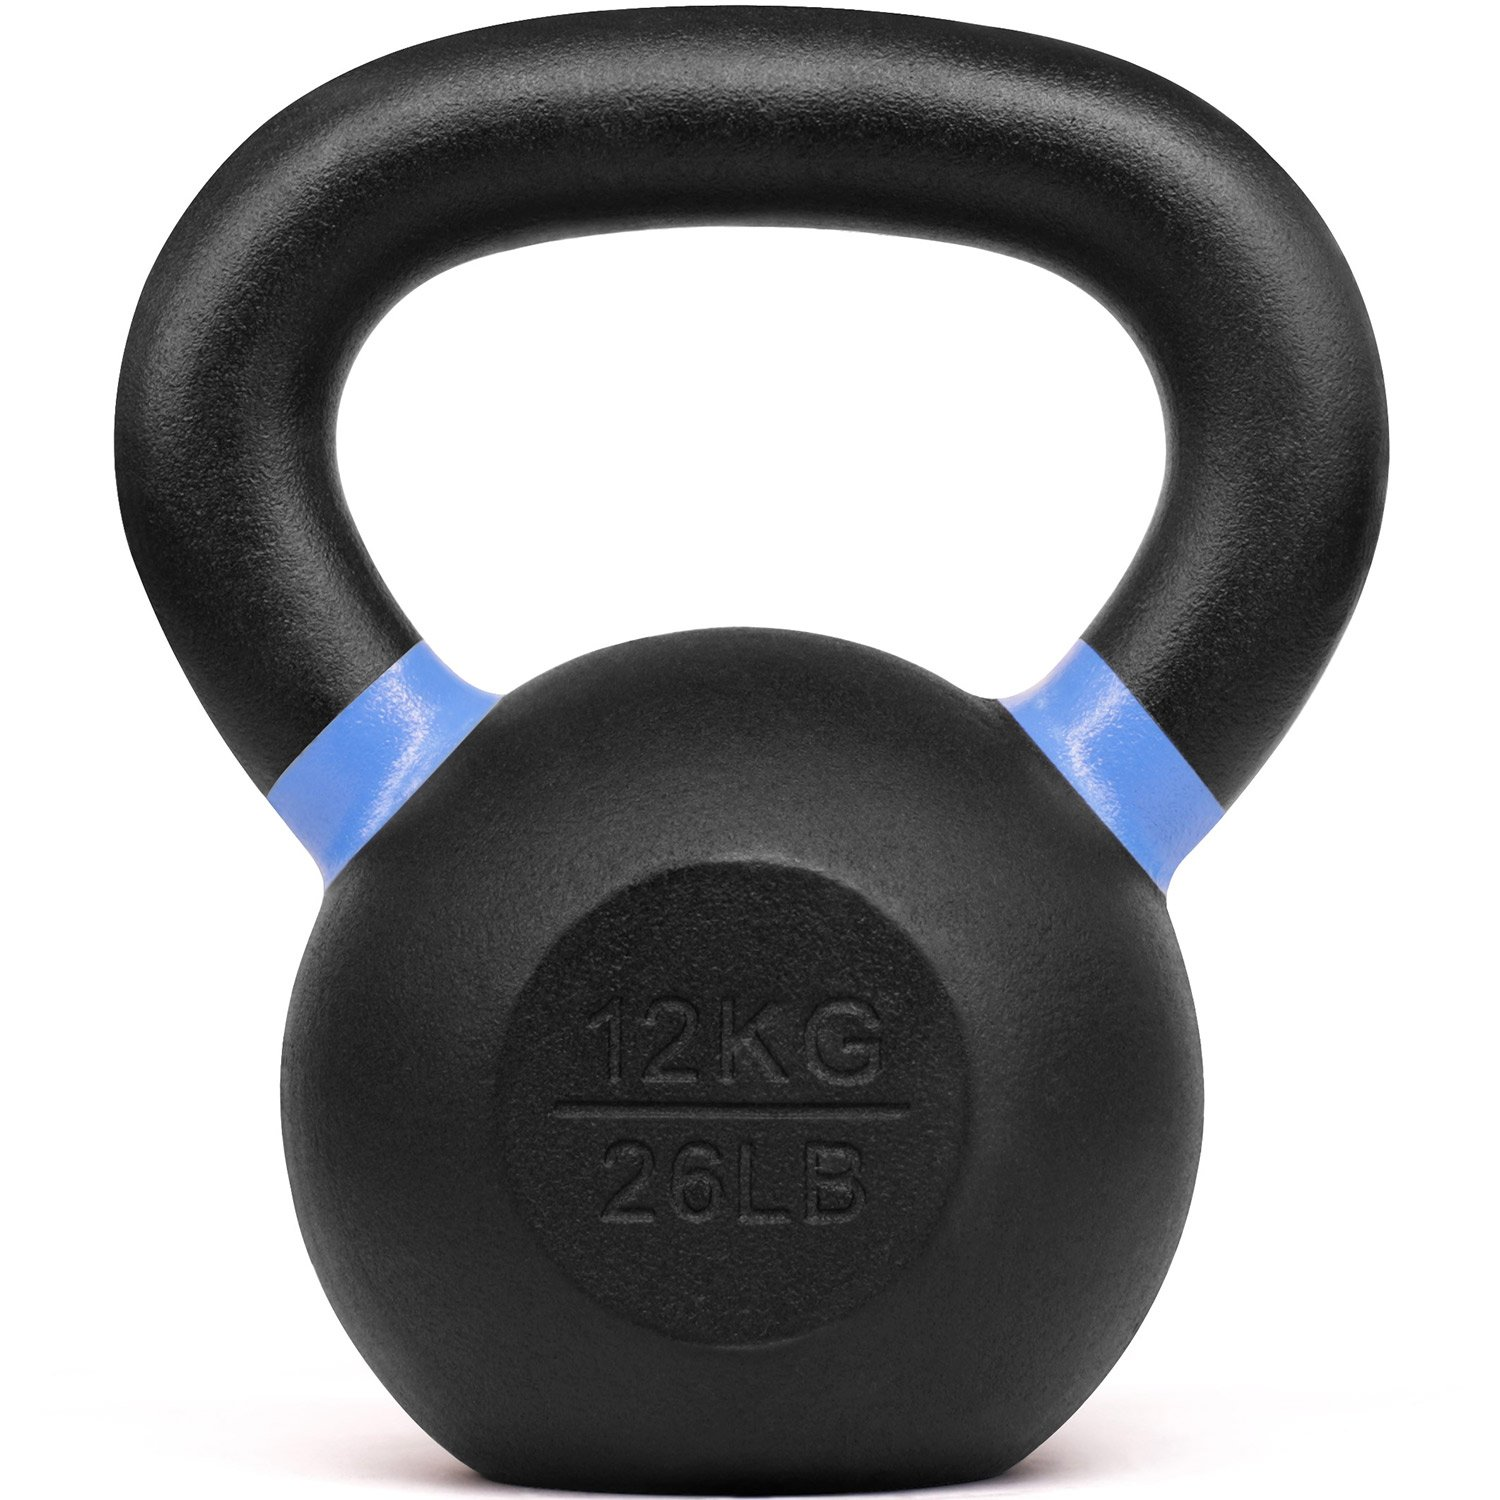 Yes4All Powder Coated Kettlebell Weights with Wide Handles & Flat Bottoms – 12kg/26lbs Cast Iron Kettlebells for Strength, Conditioning & Cross-Training